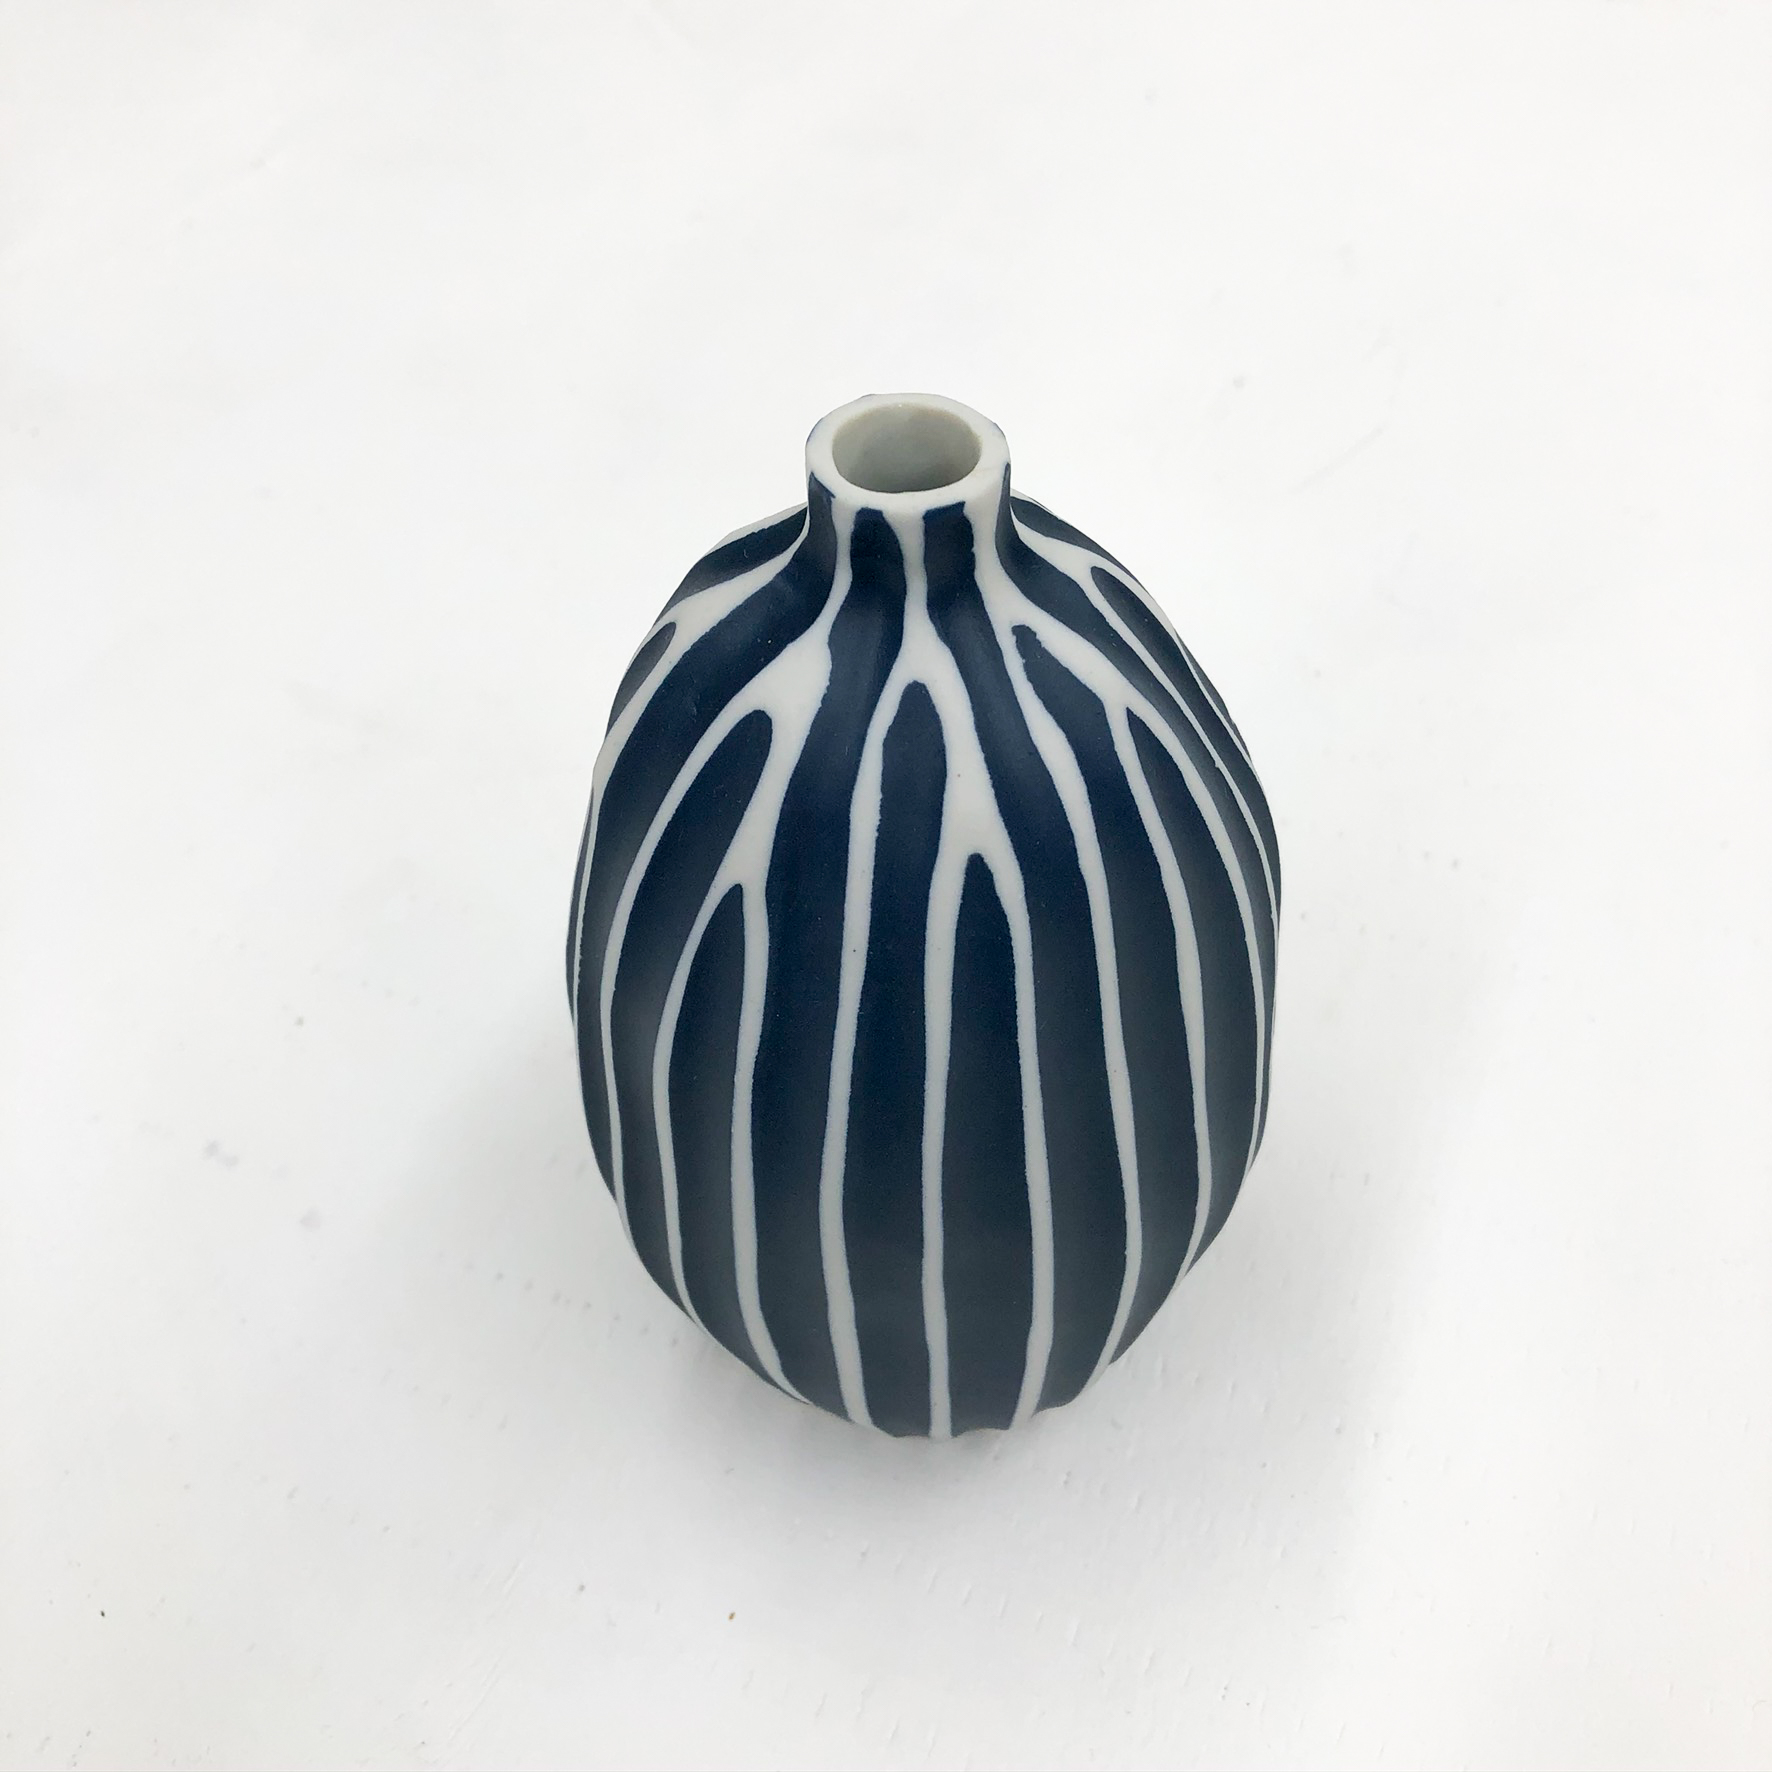 Gugu Sag L Handmade Vase - White & Navy - top view